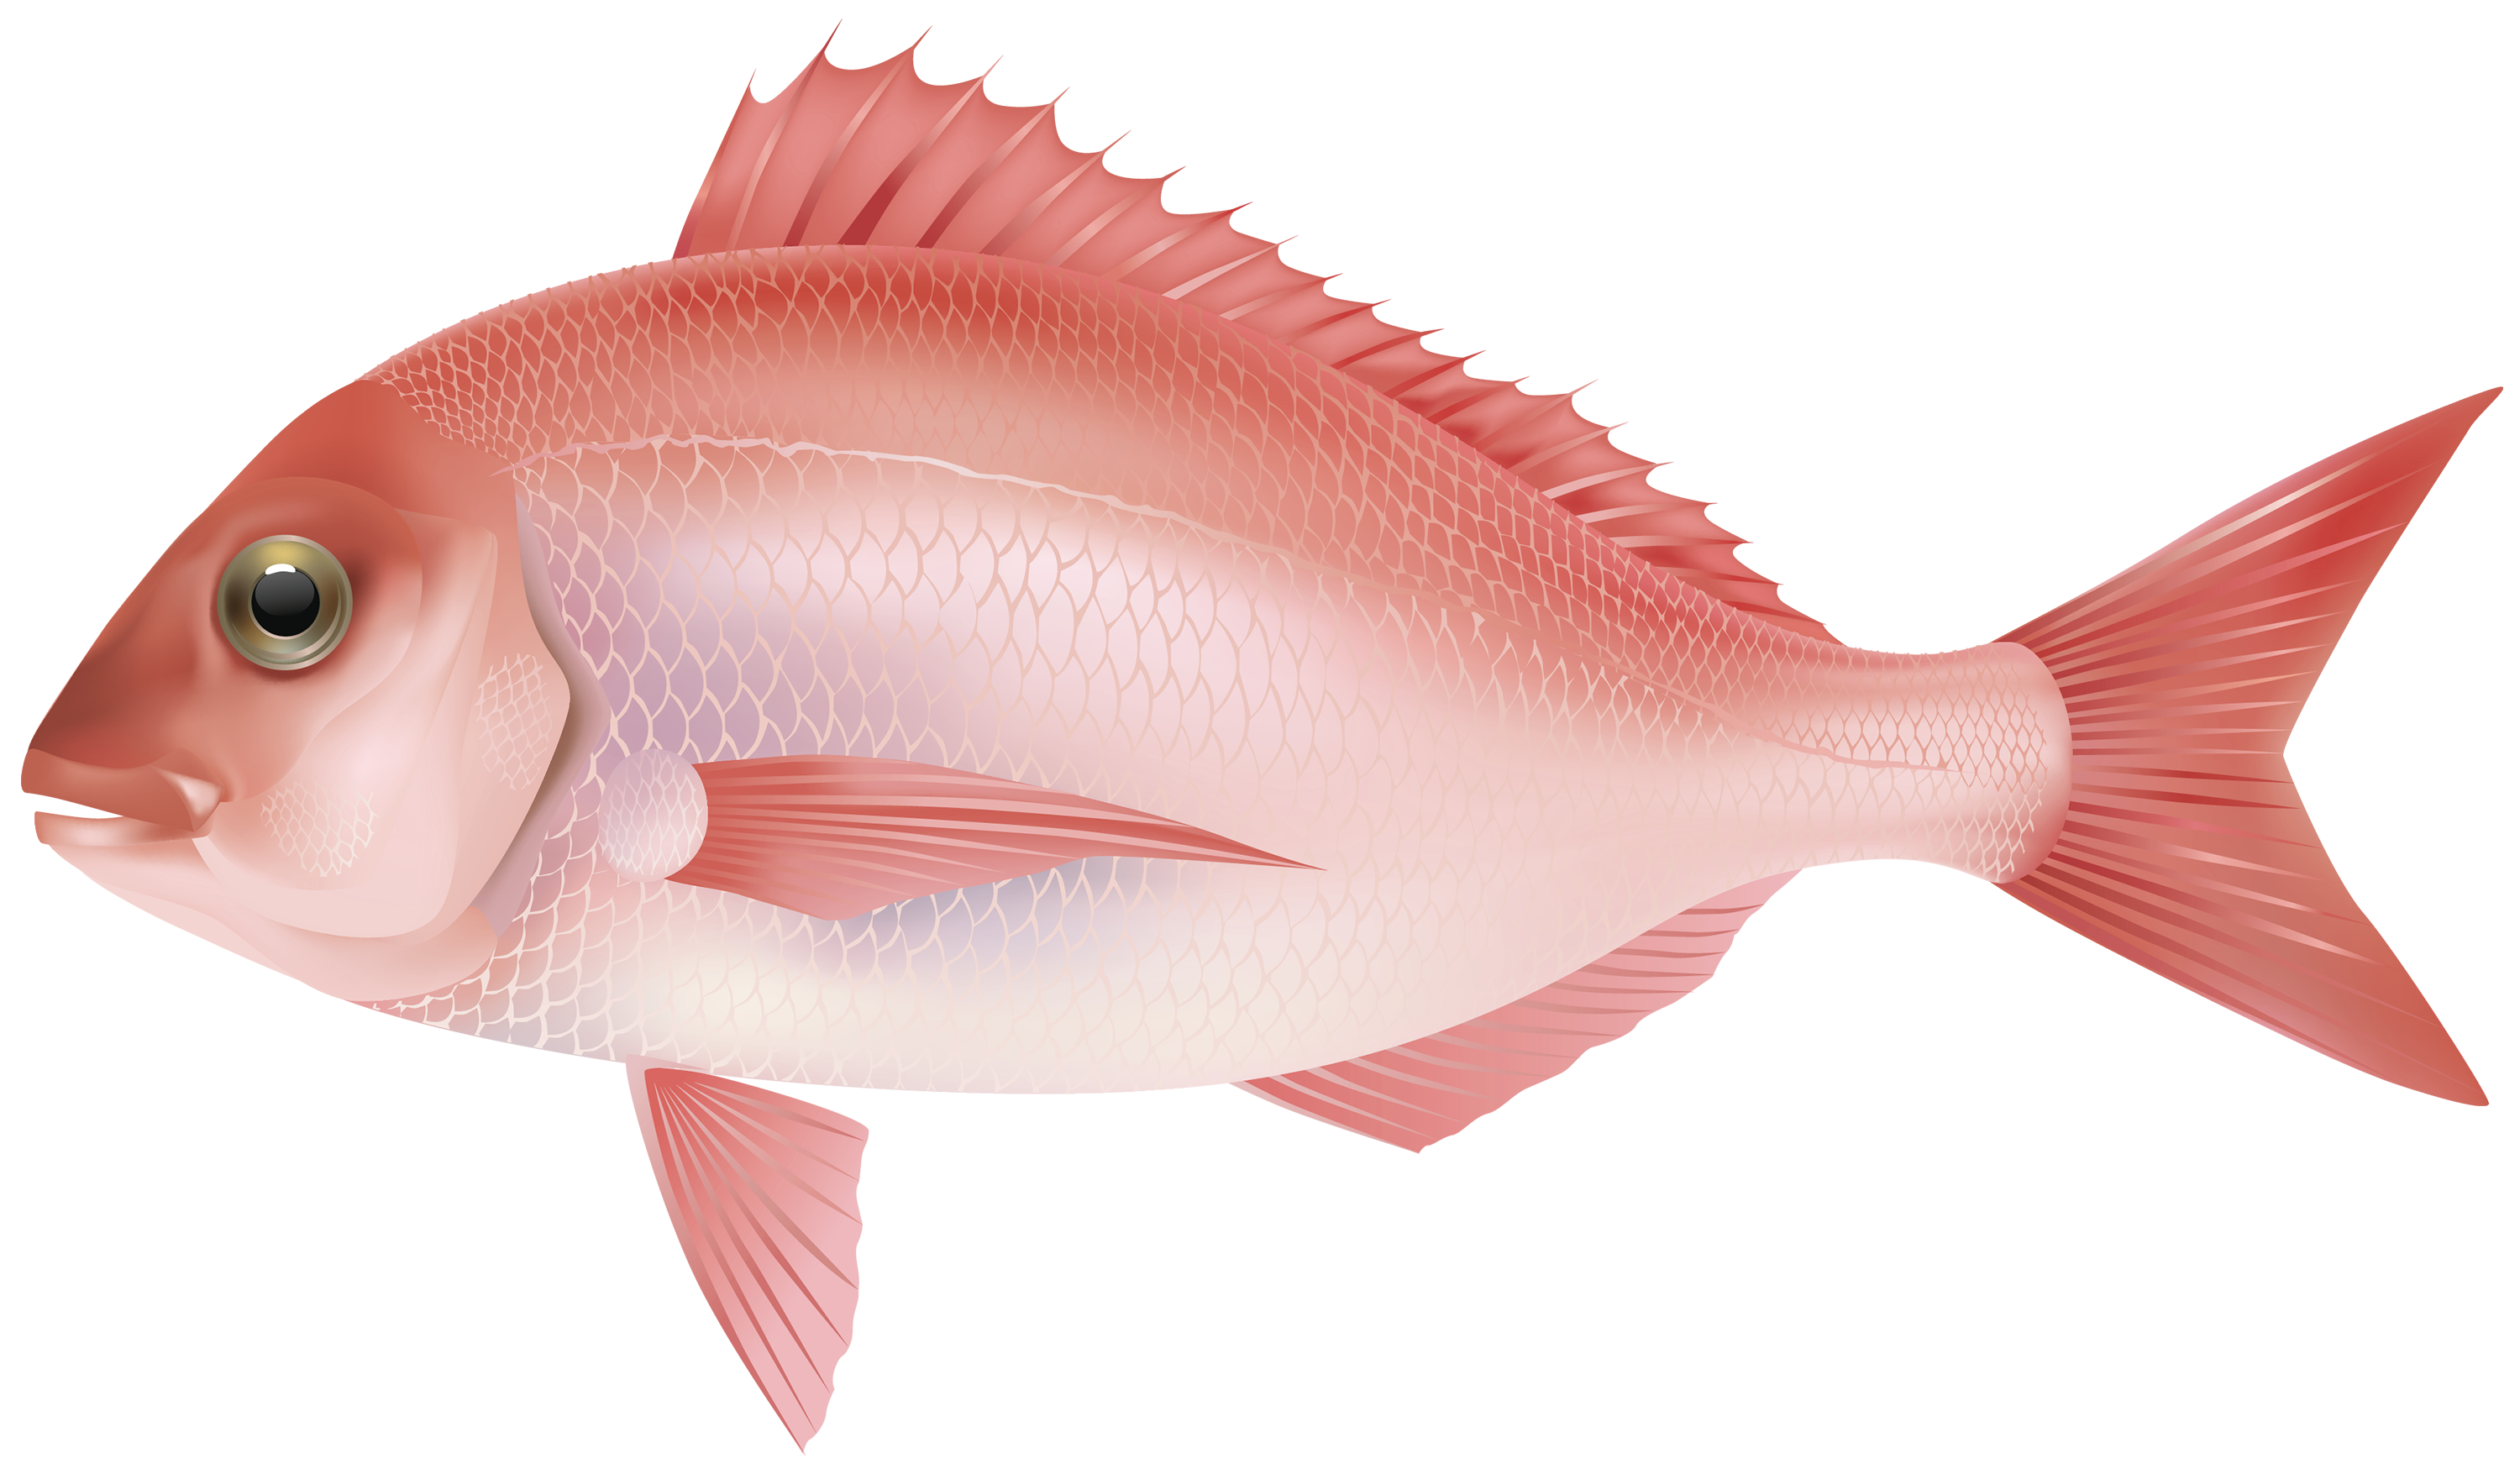 Realistic cool fish clipart images graphic library Red Sea Fish PNG Clipart Image - Best WEB Clipart graphic library